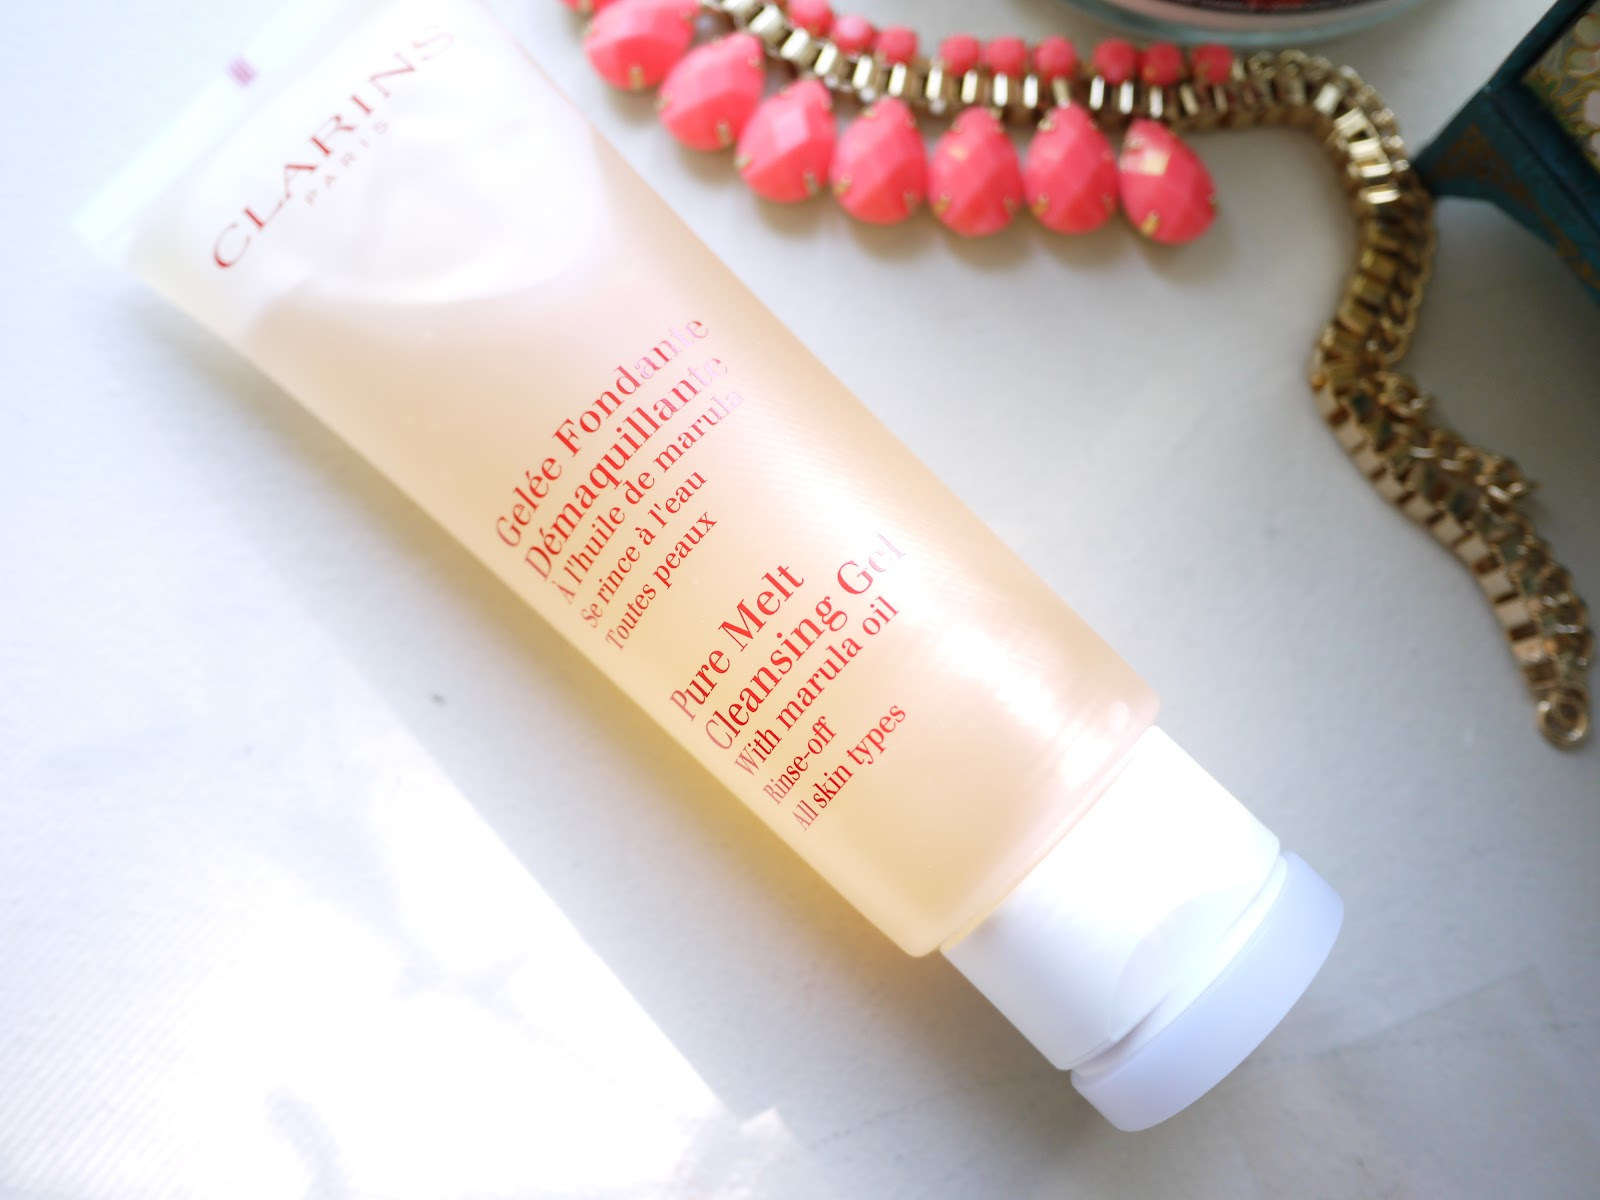 Clarins Pure Melt Cleansing Gel with Marula Oil review